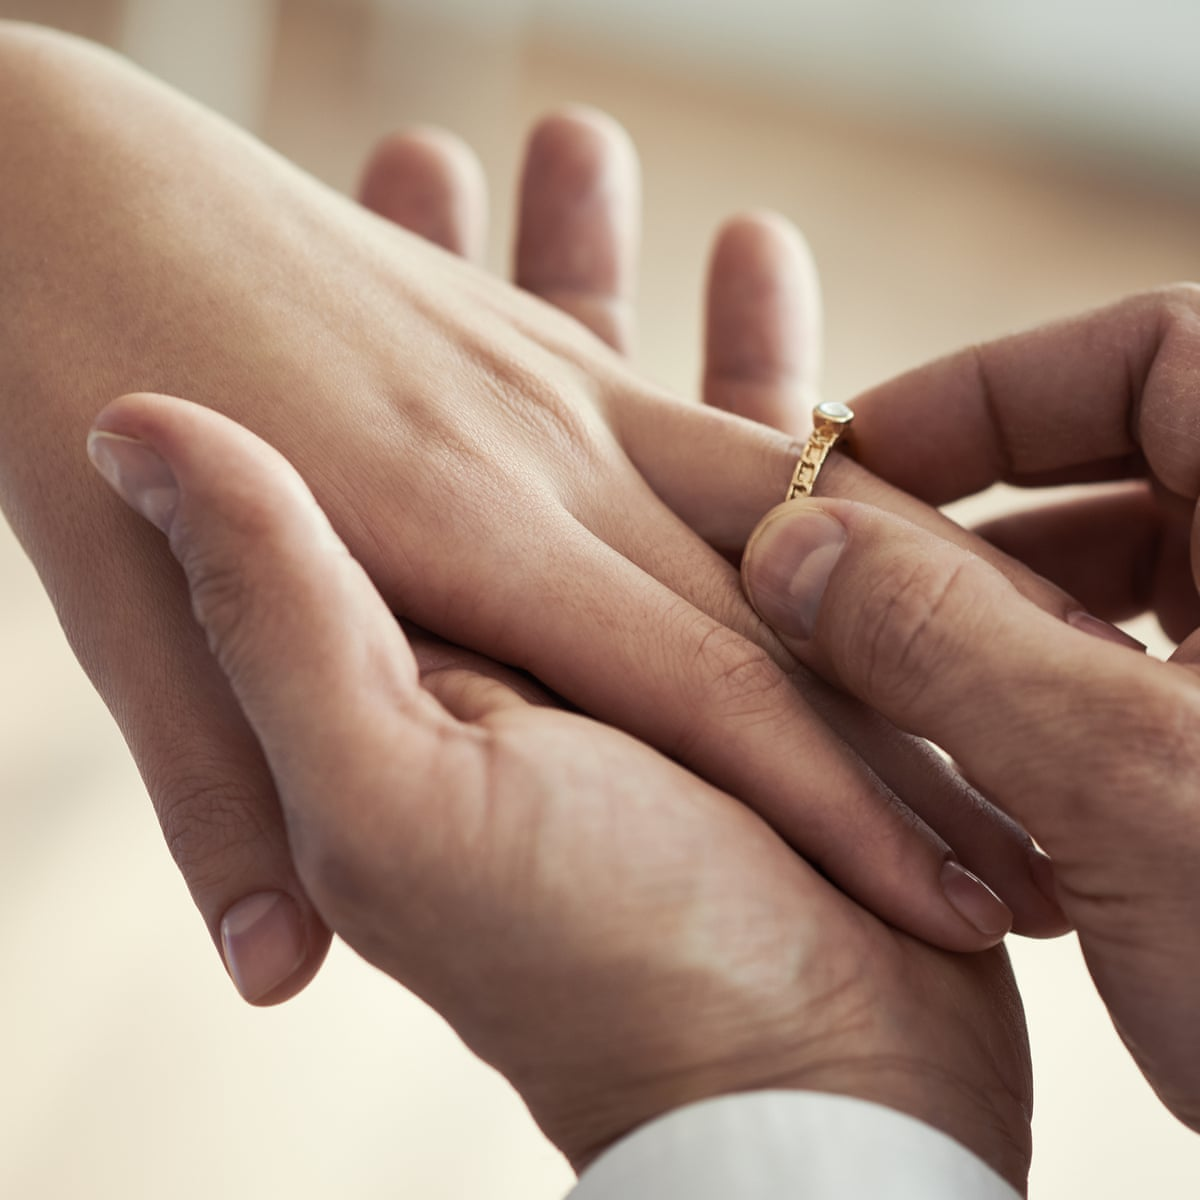 Sex Is For Married Heterosexual Couples Only Says Church Of